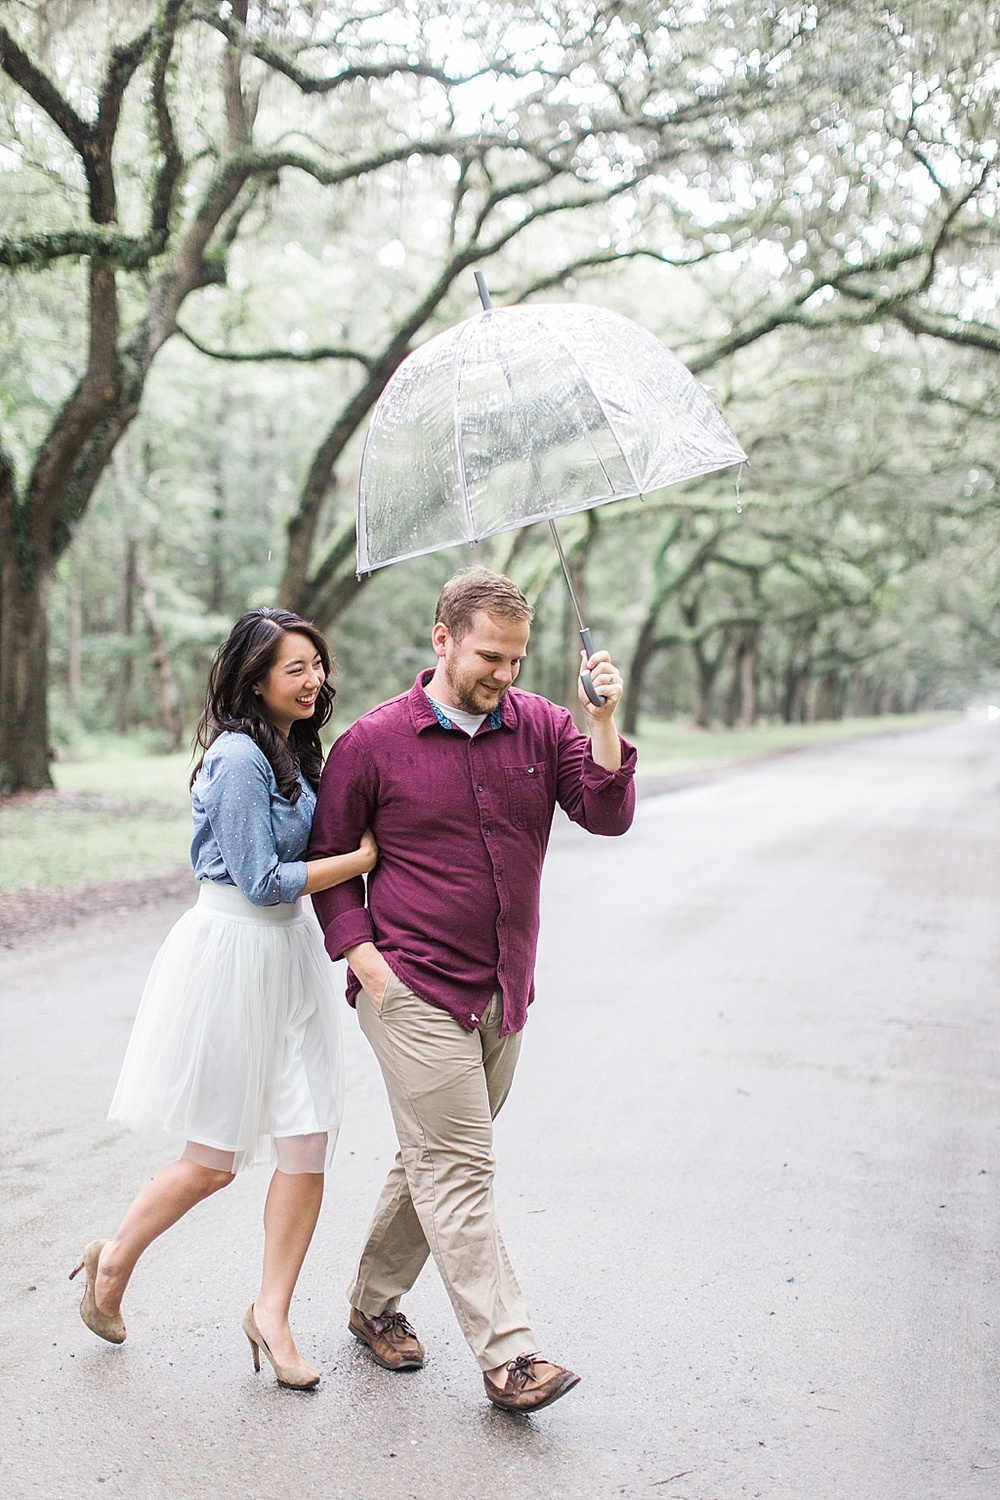 Ronnie_Steve_Savannah_Photographer_Rainy_Day_Photos_Clear_Umbrella004.JPG